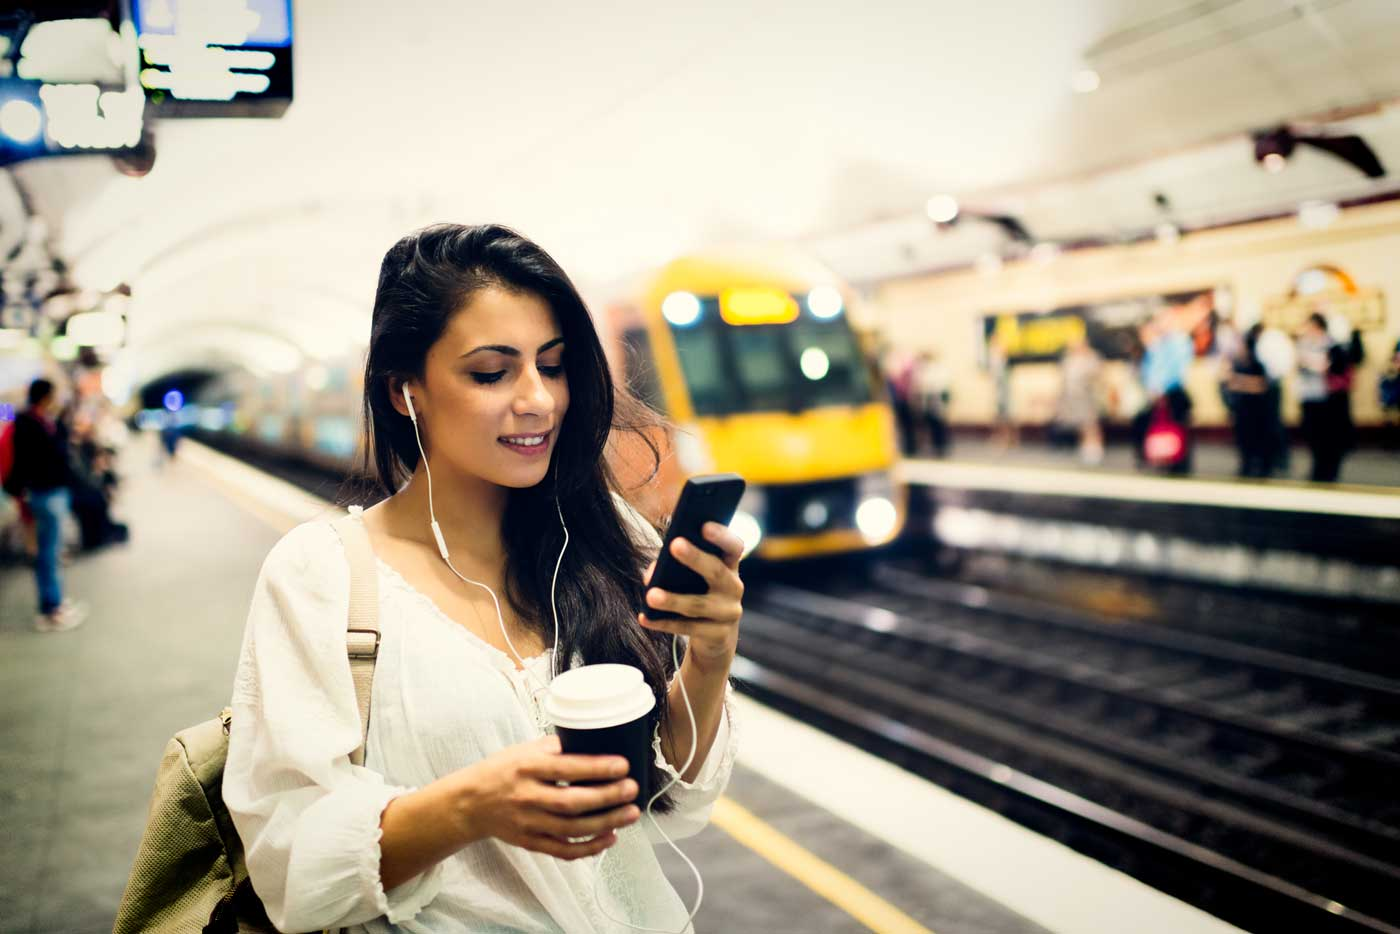 Woman at trainstation with phone